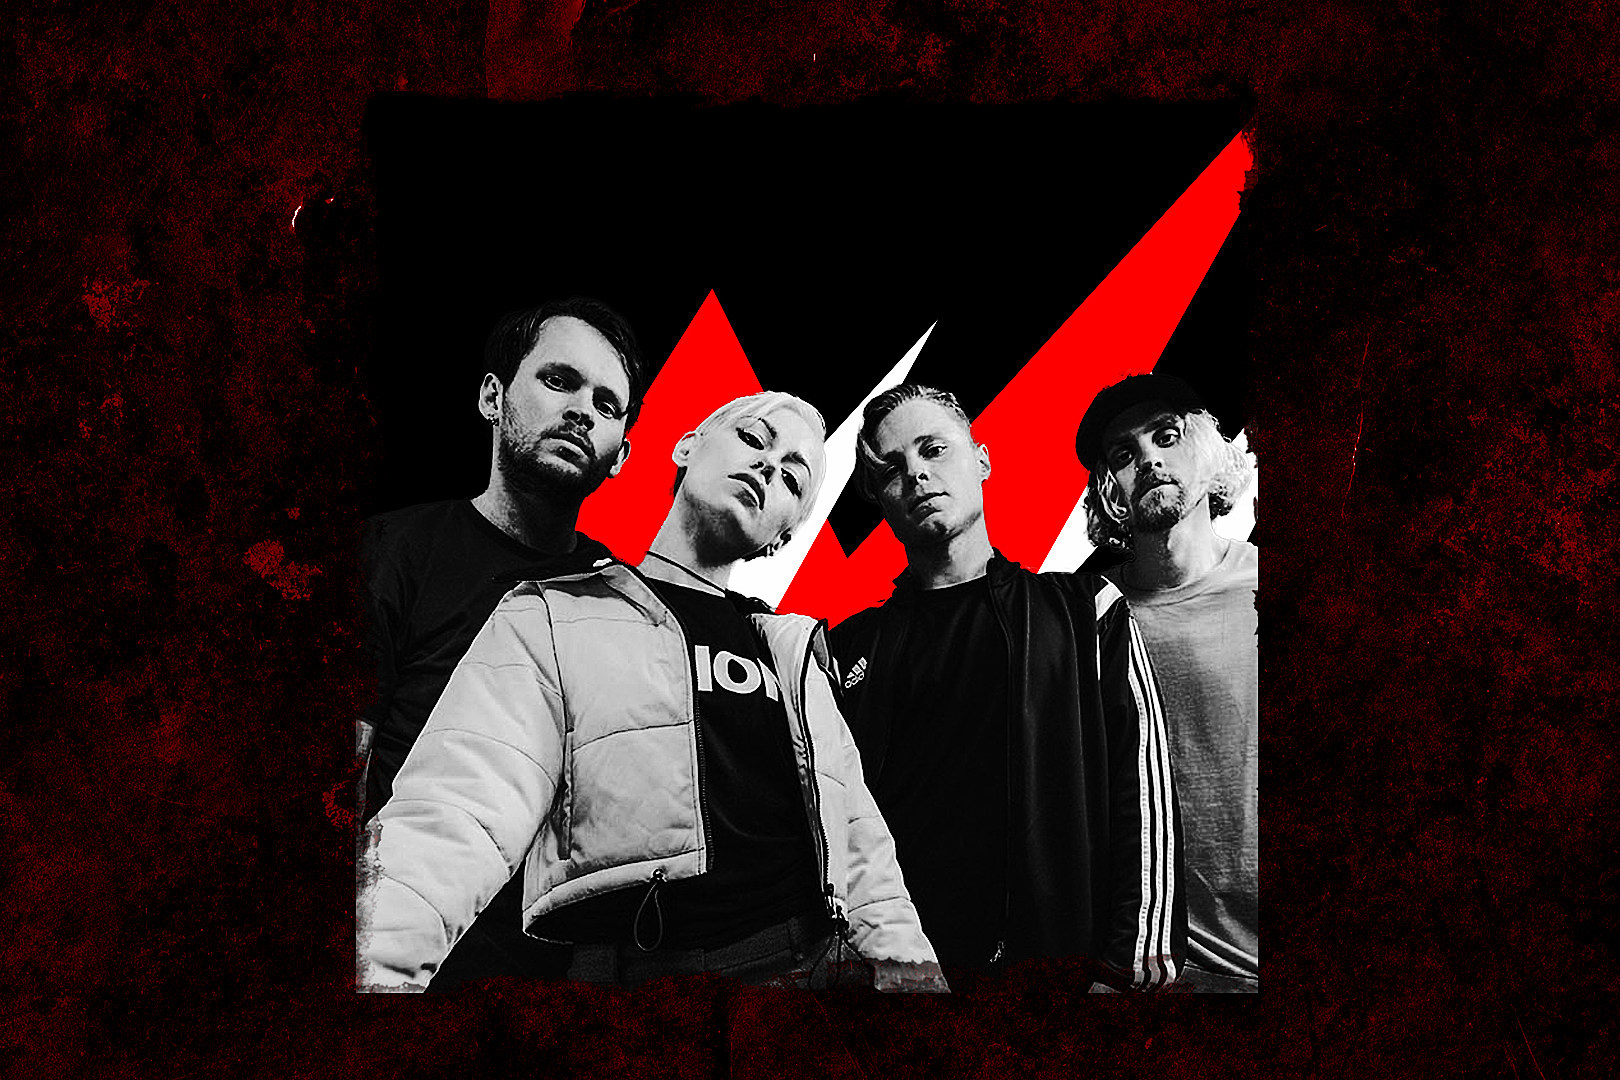 Weekly Wire: Your New Music Playlist Featuring Tonight Alive, Judas Priest and More